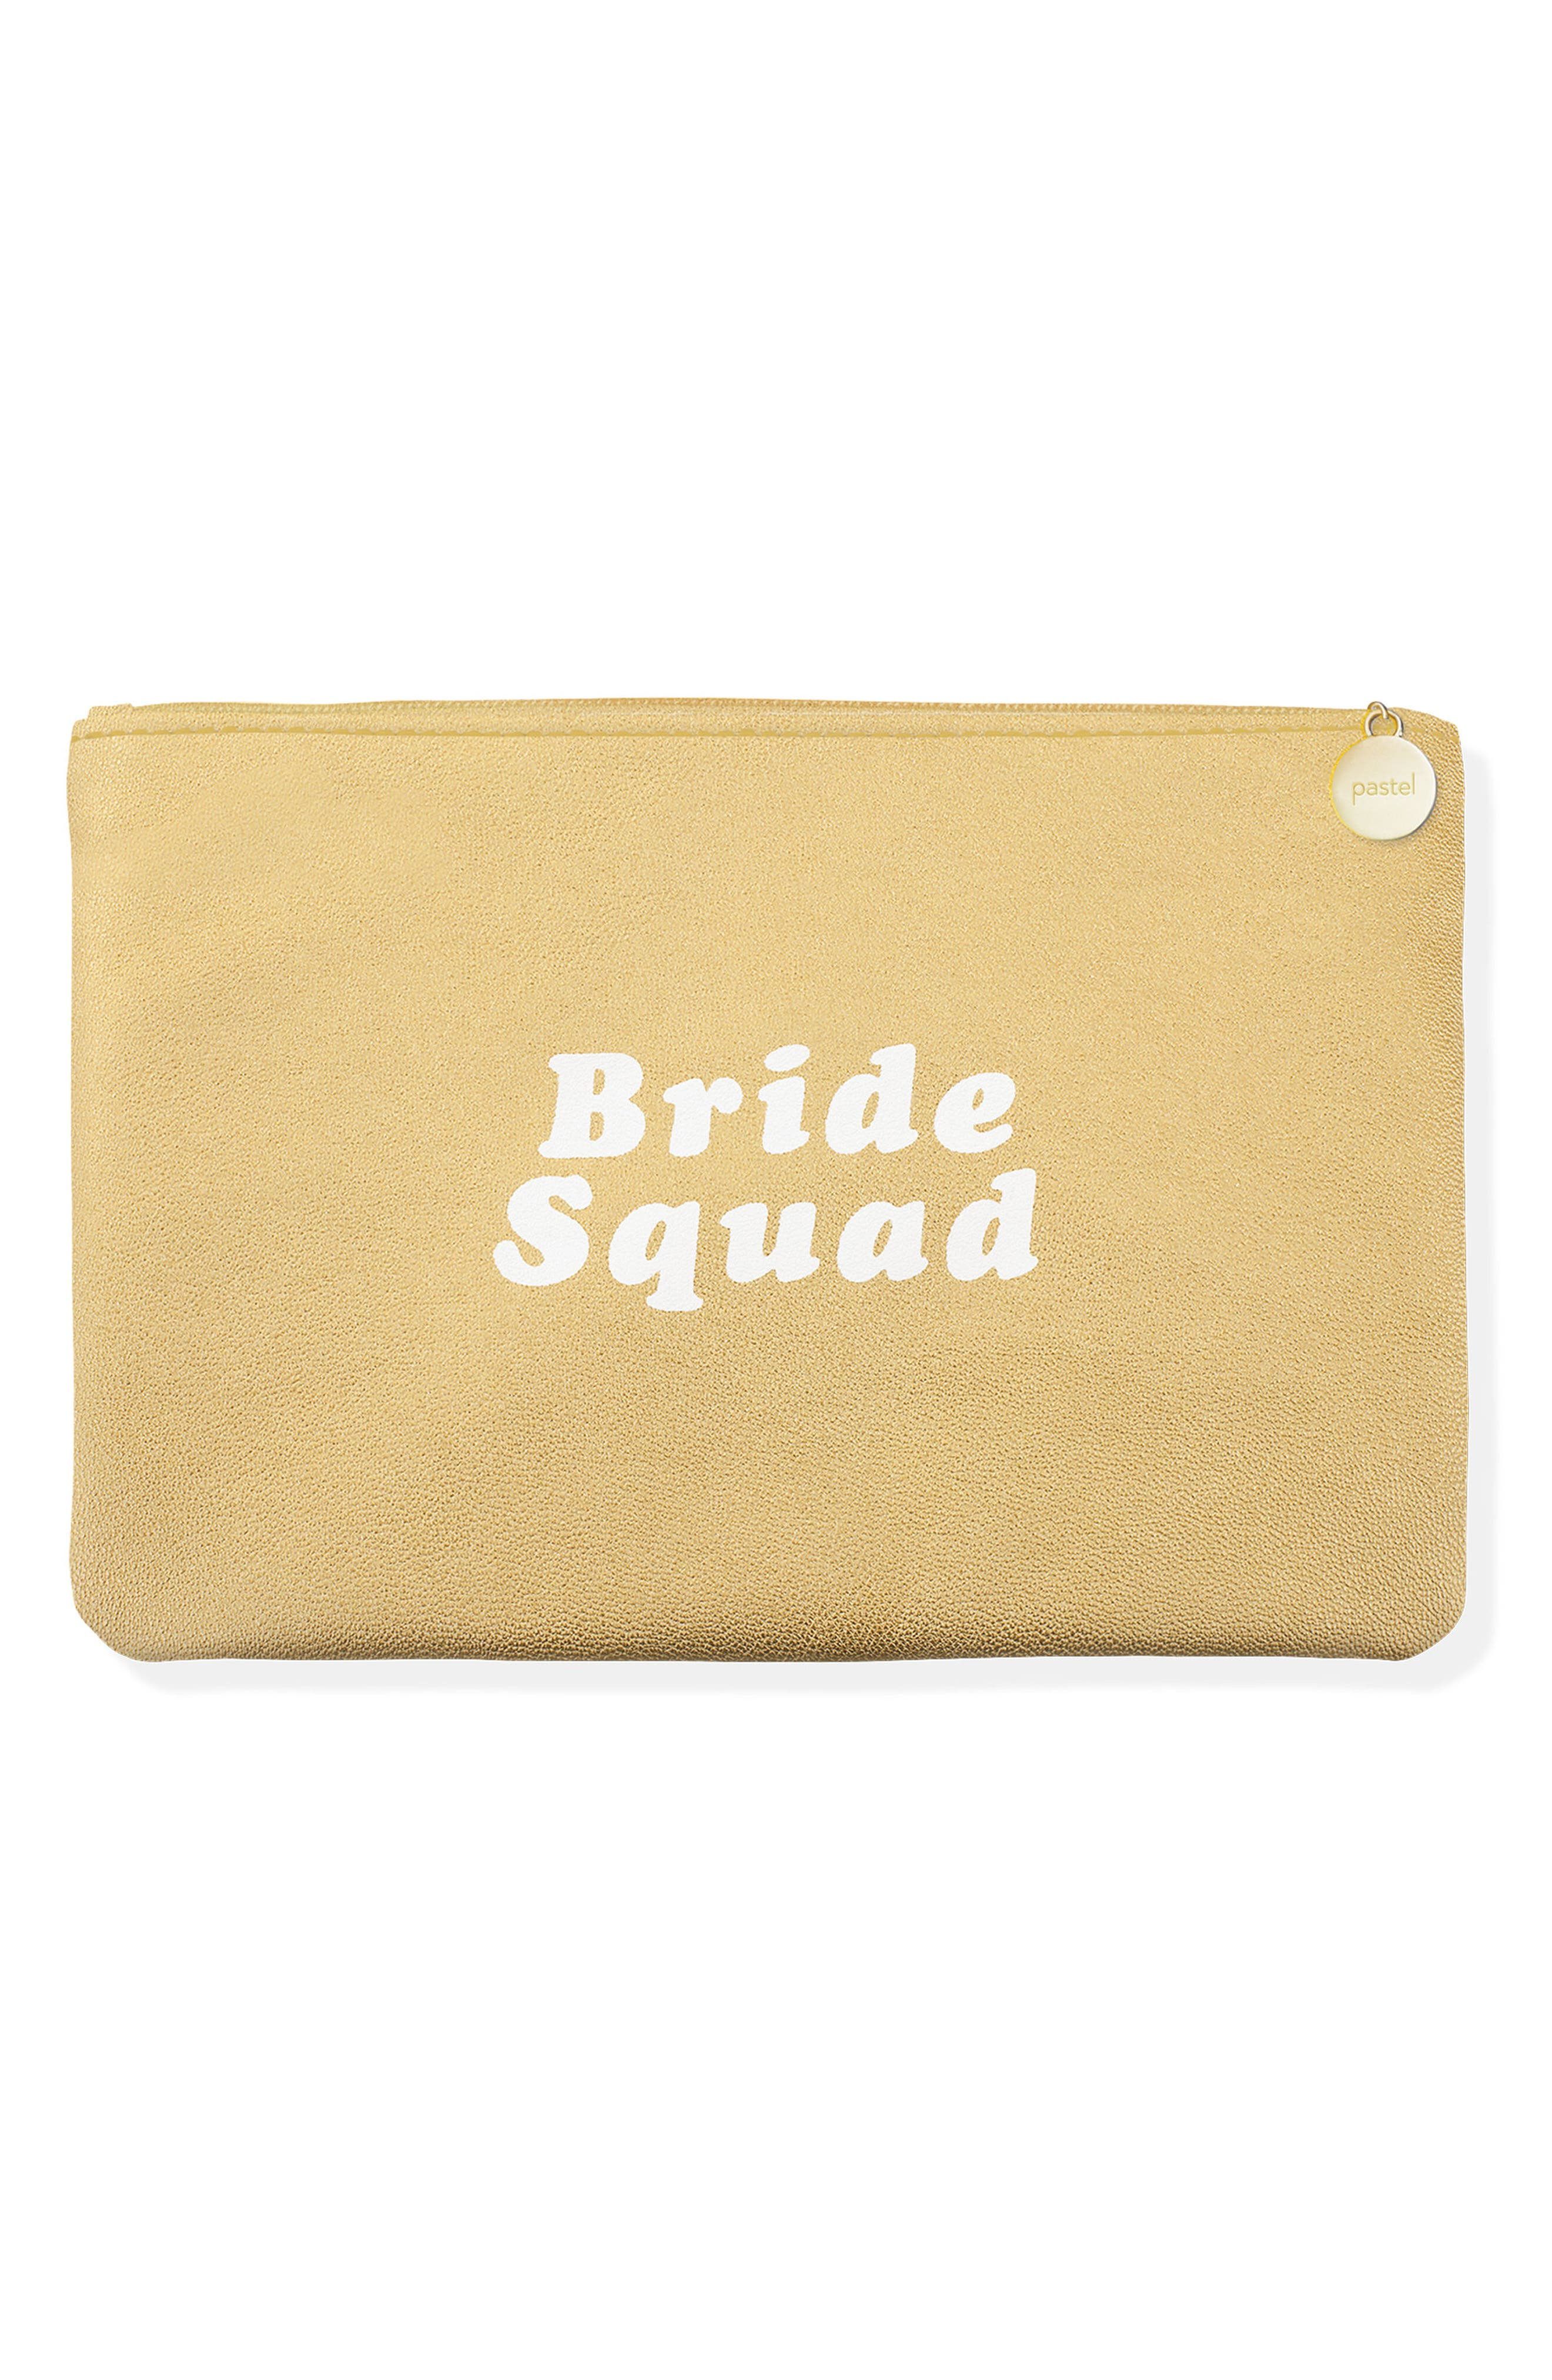 Bride Squad Zip Pouch,                             Main thumbnail 1, color,                             710